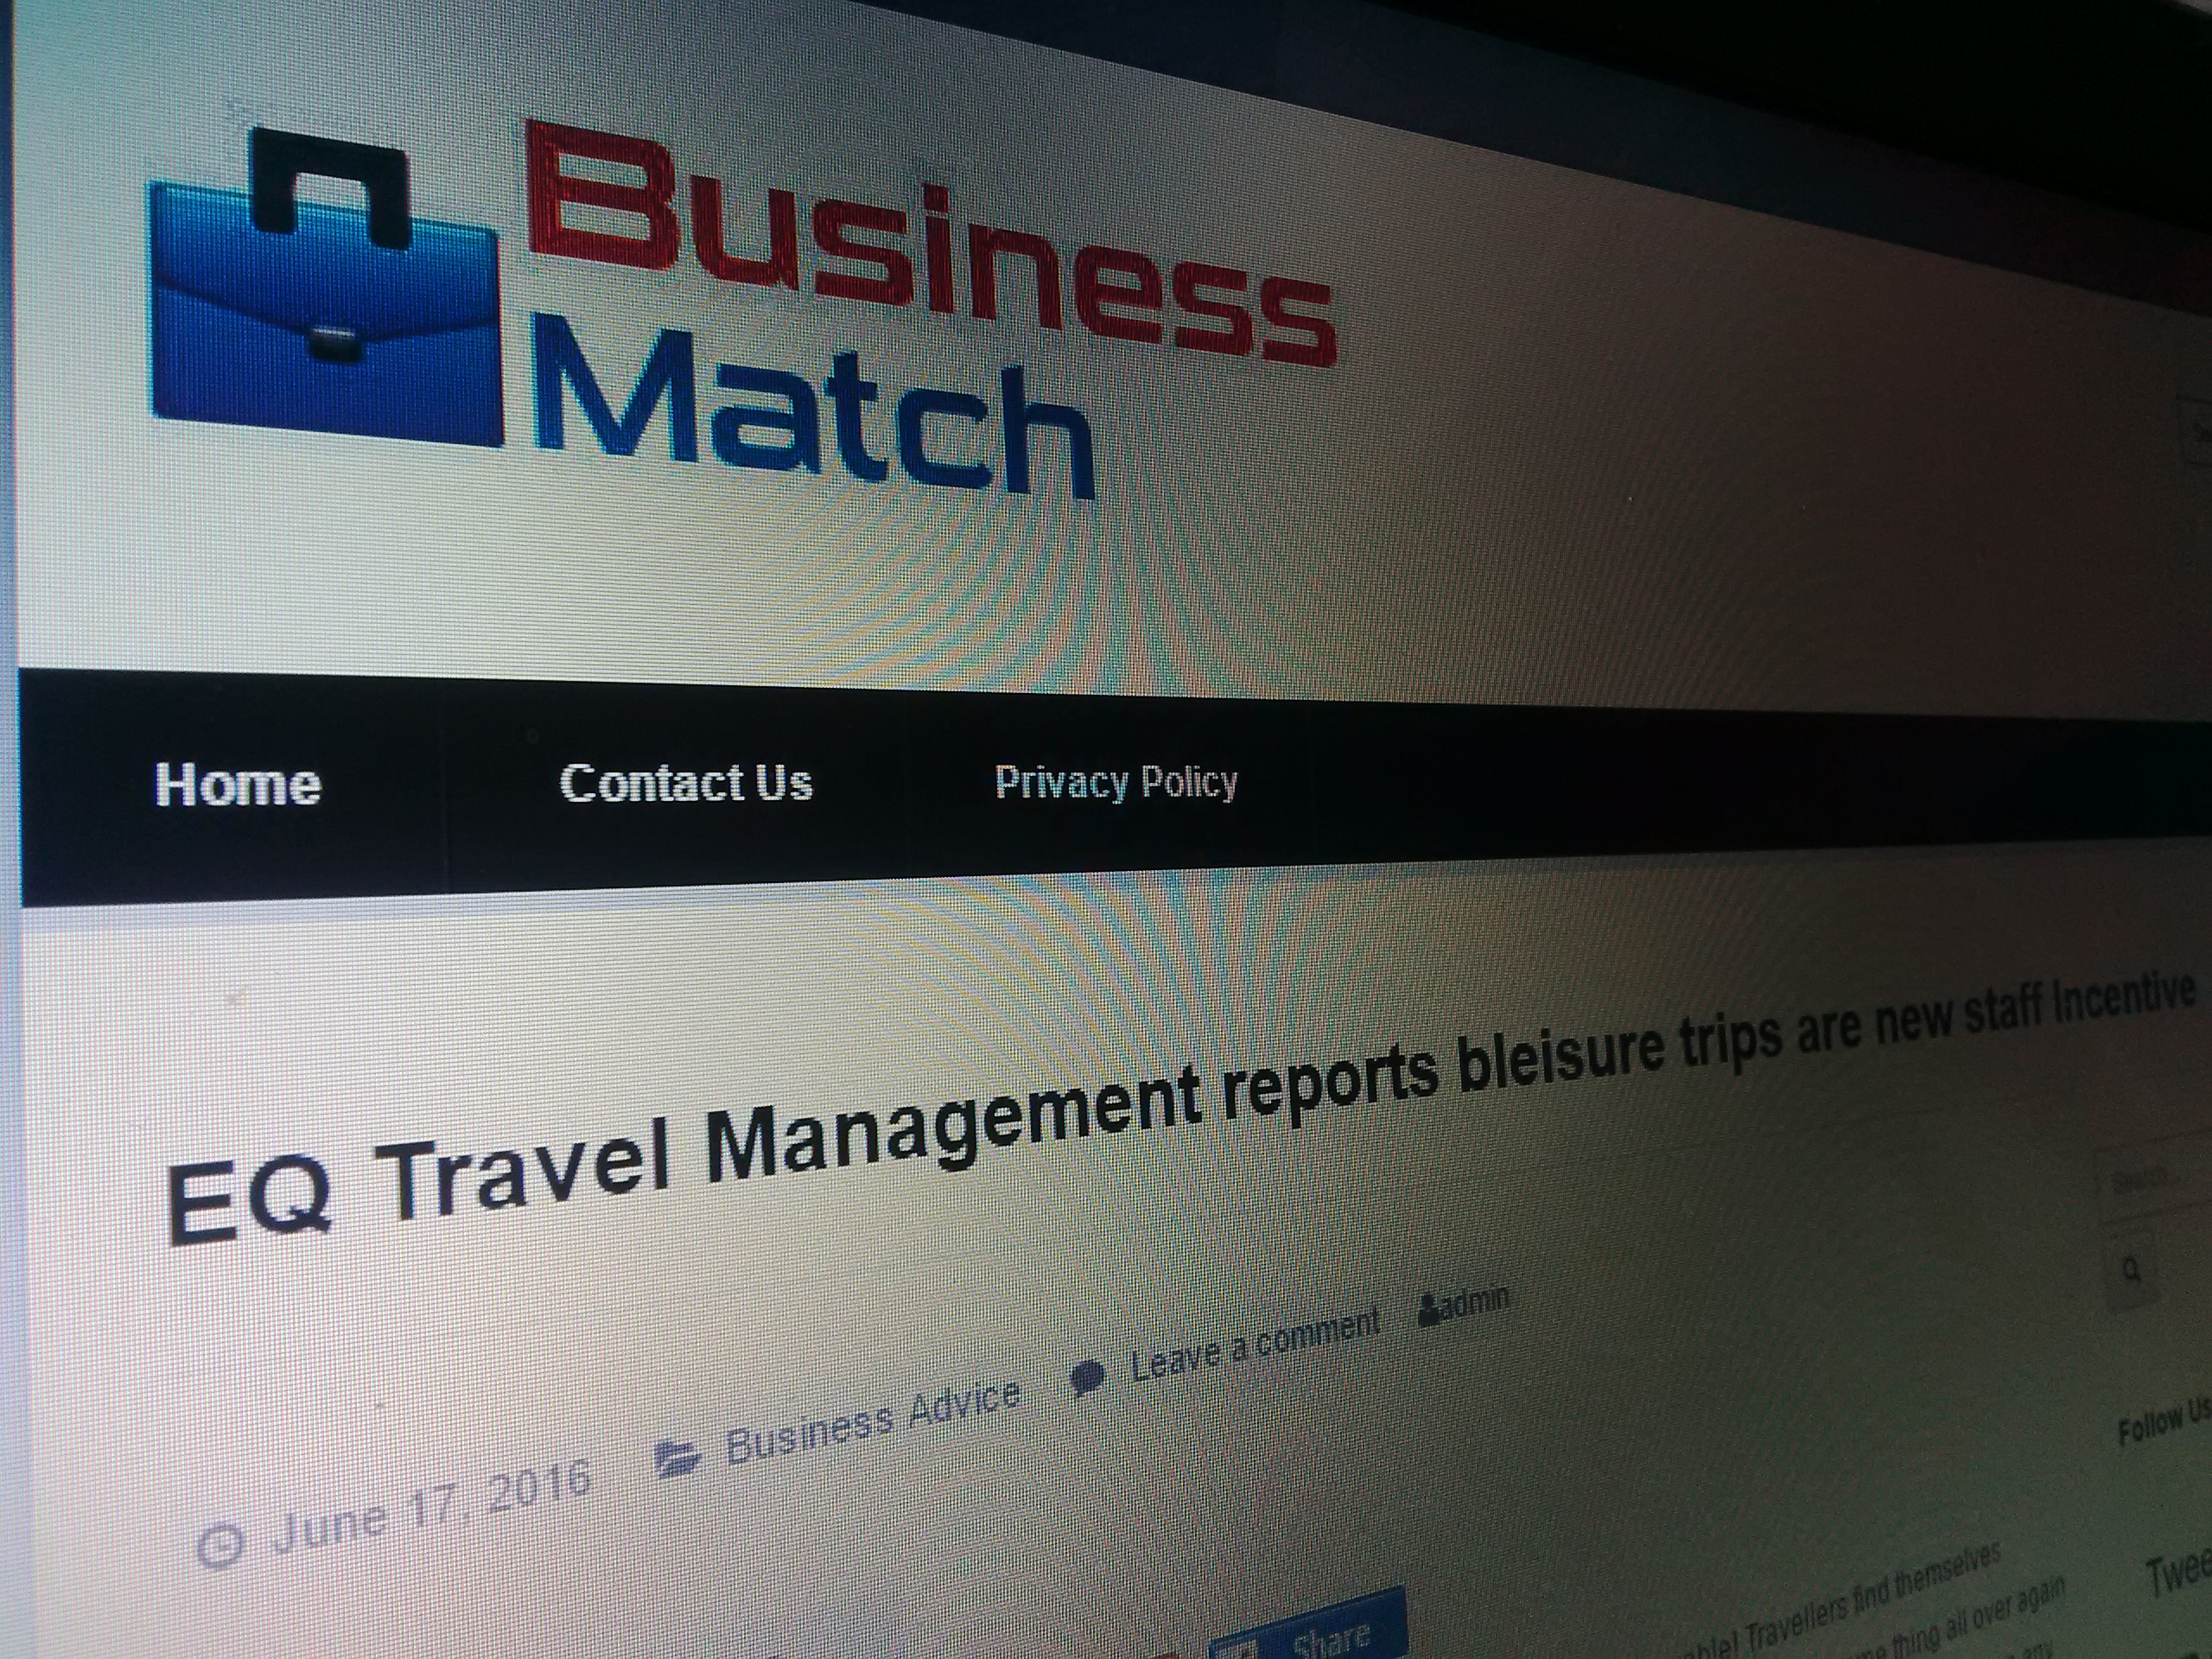 Business Match - June 2016